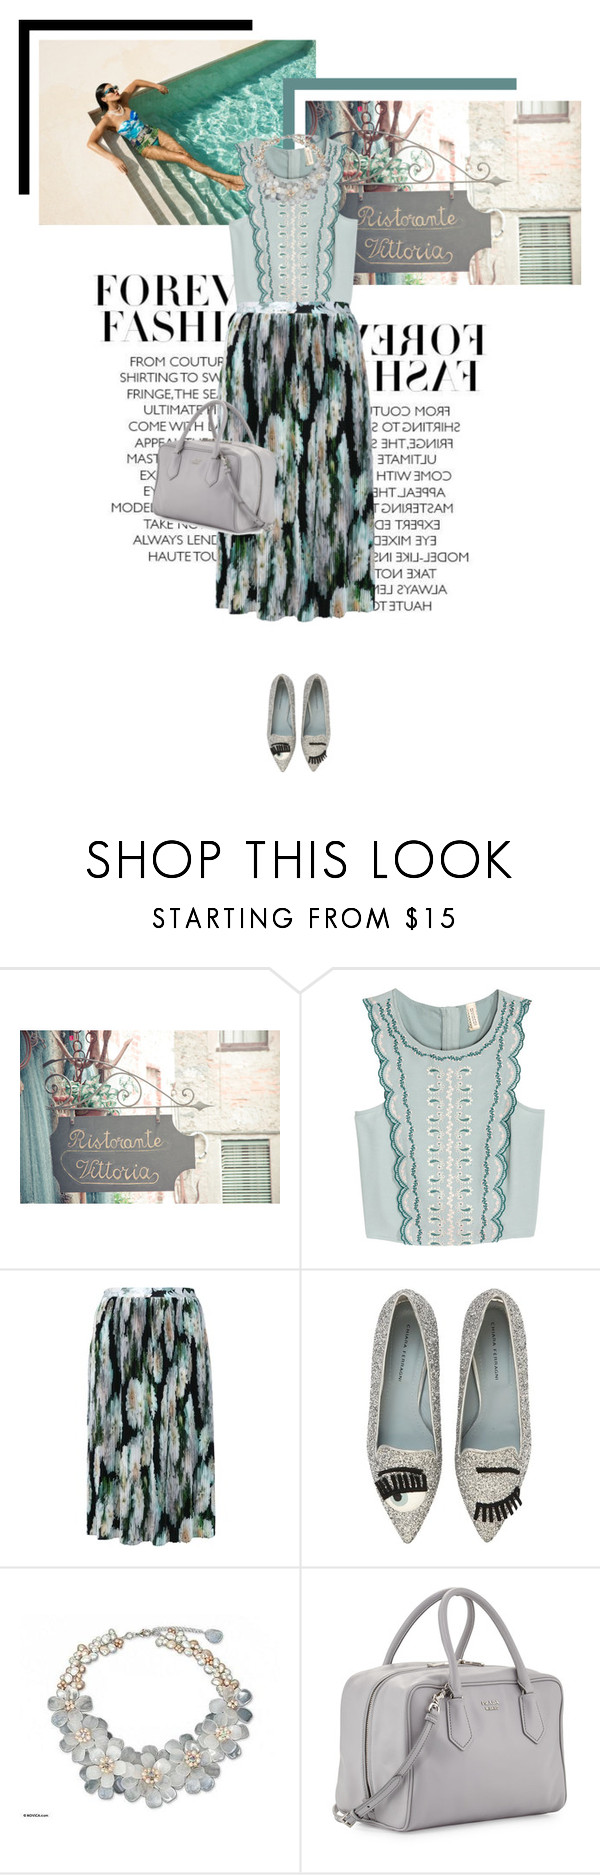 """""""It's all about mint"""" by veronicamastalli ❤ liked on Polyvore featuring We Are Handsome, Tiffany & Co., ADAM, Chiara Ferragni, NOVICA and Prada"""